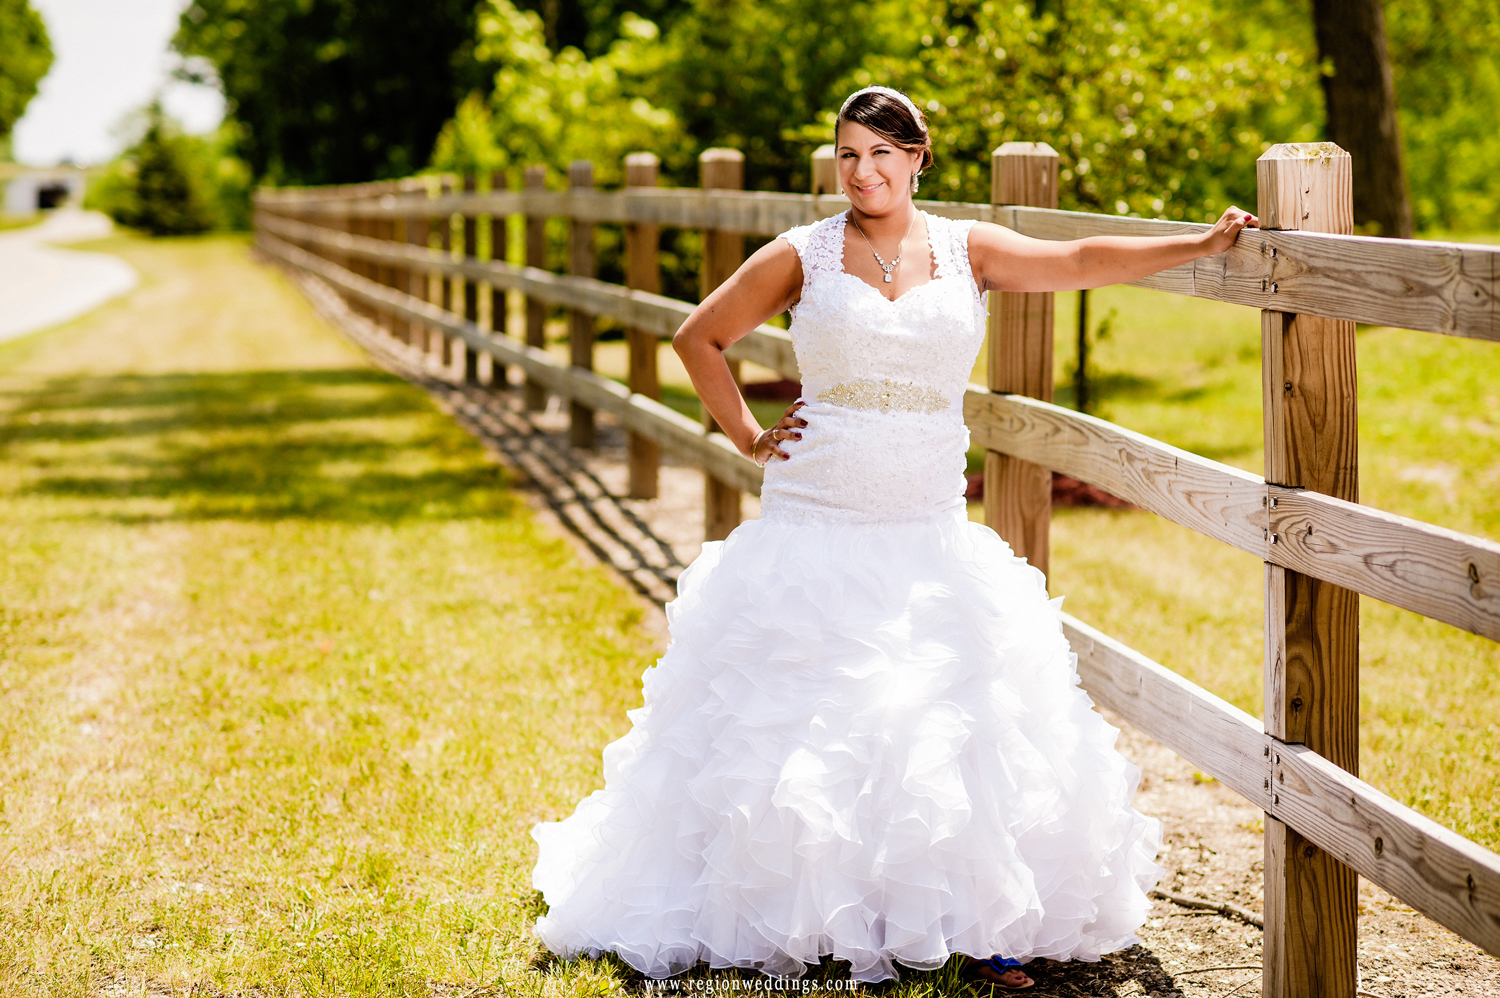 The bride leans against a rustic fence during her June wedding in Schererville.